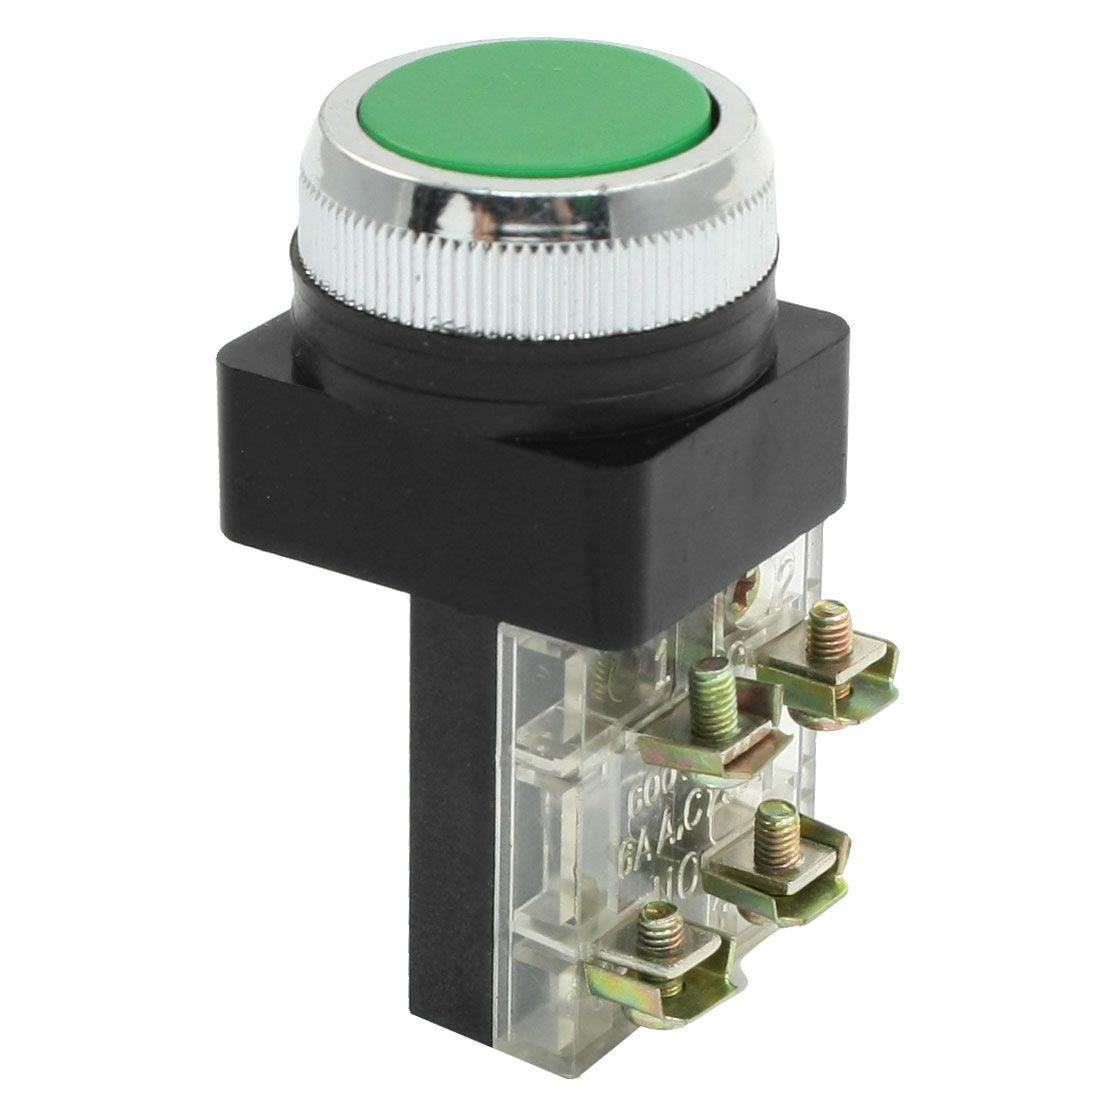 Green Flat Cap Pushbutton Momentary NO NC Push Button Switch AC 250V 6A